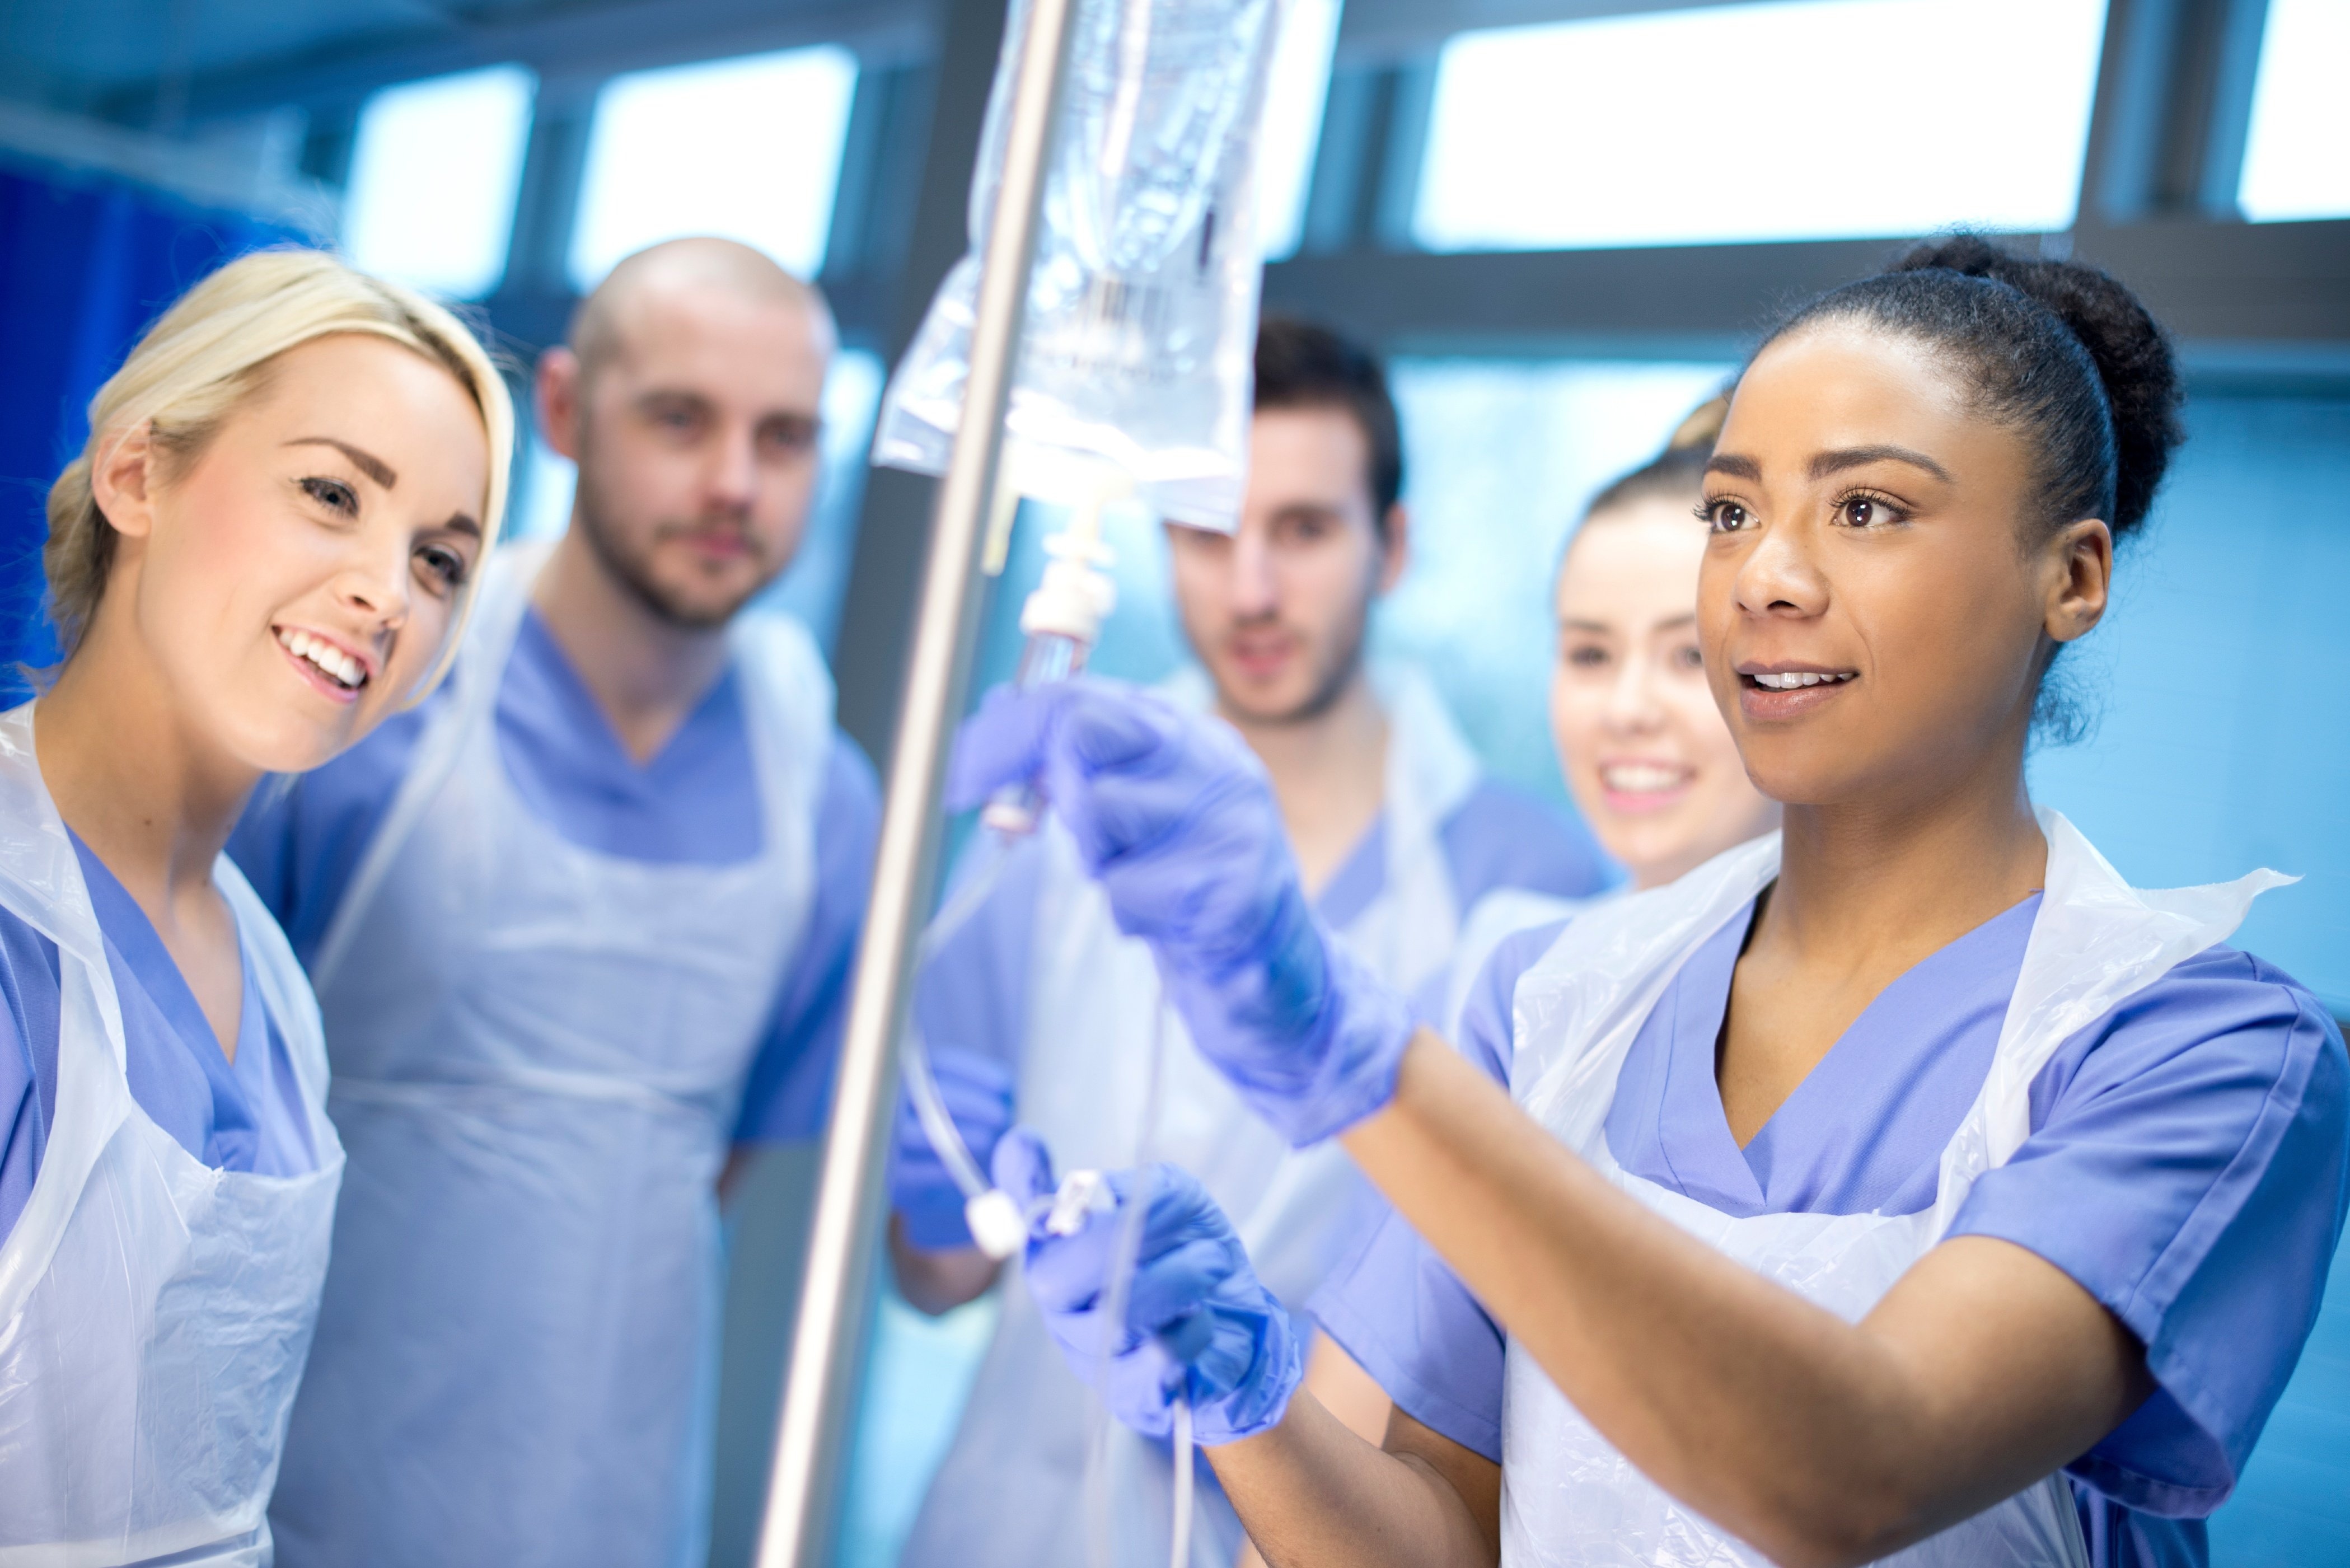 Top 3 Challenges for Nurses and Allied Healthcare Professionals